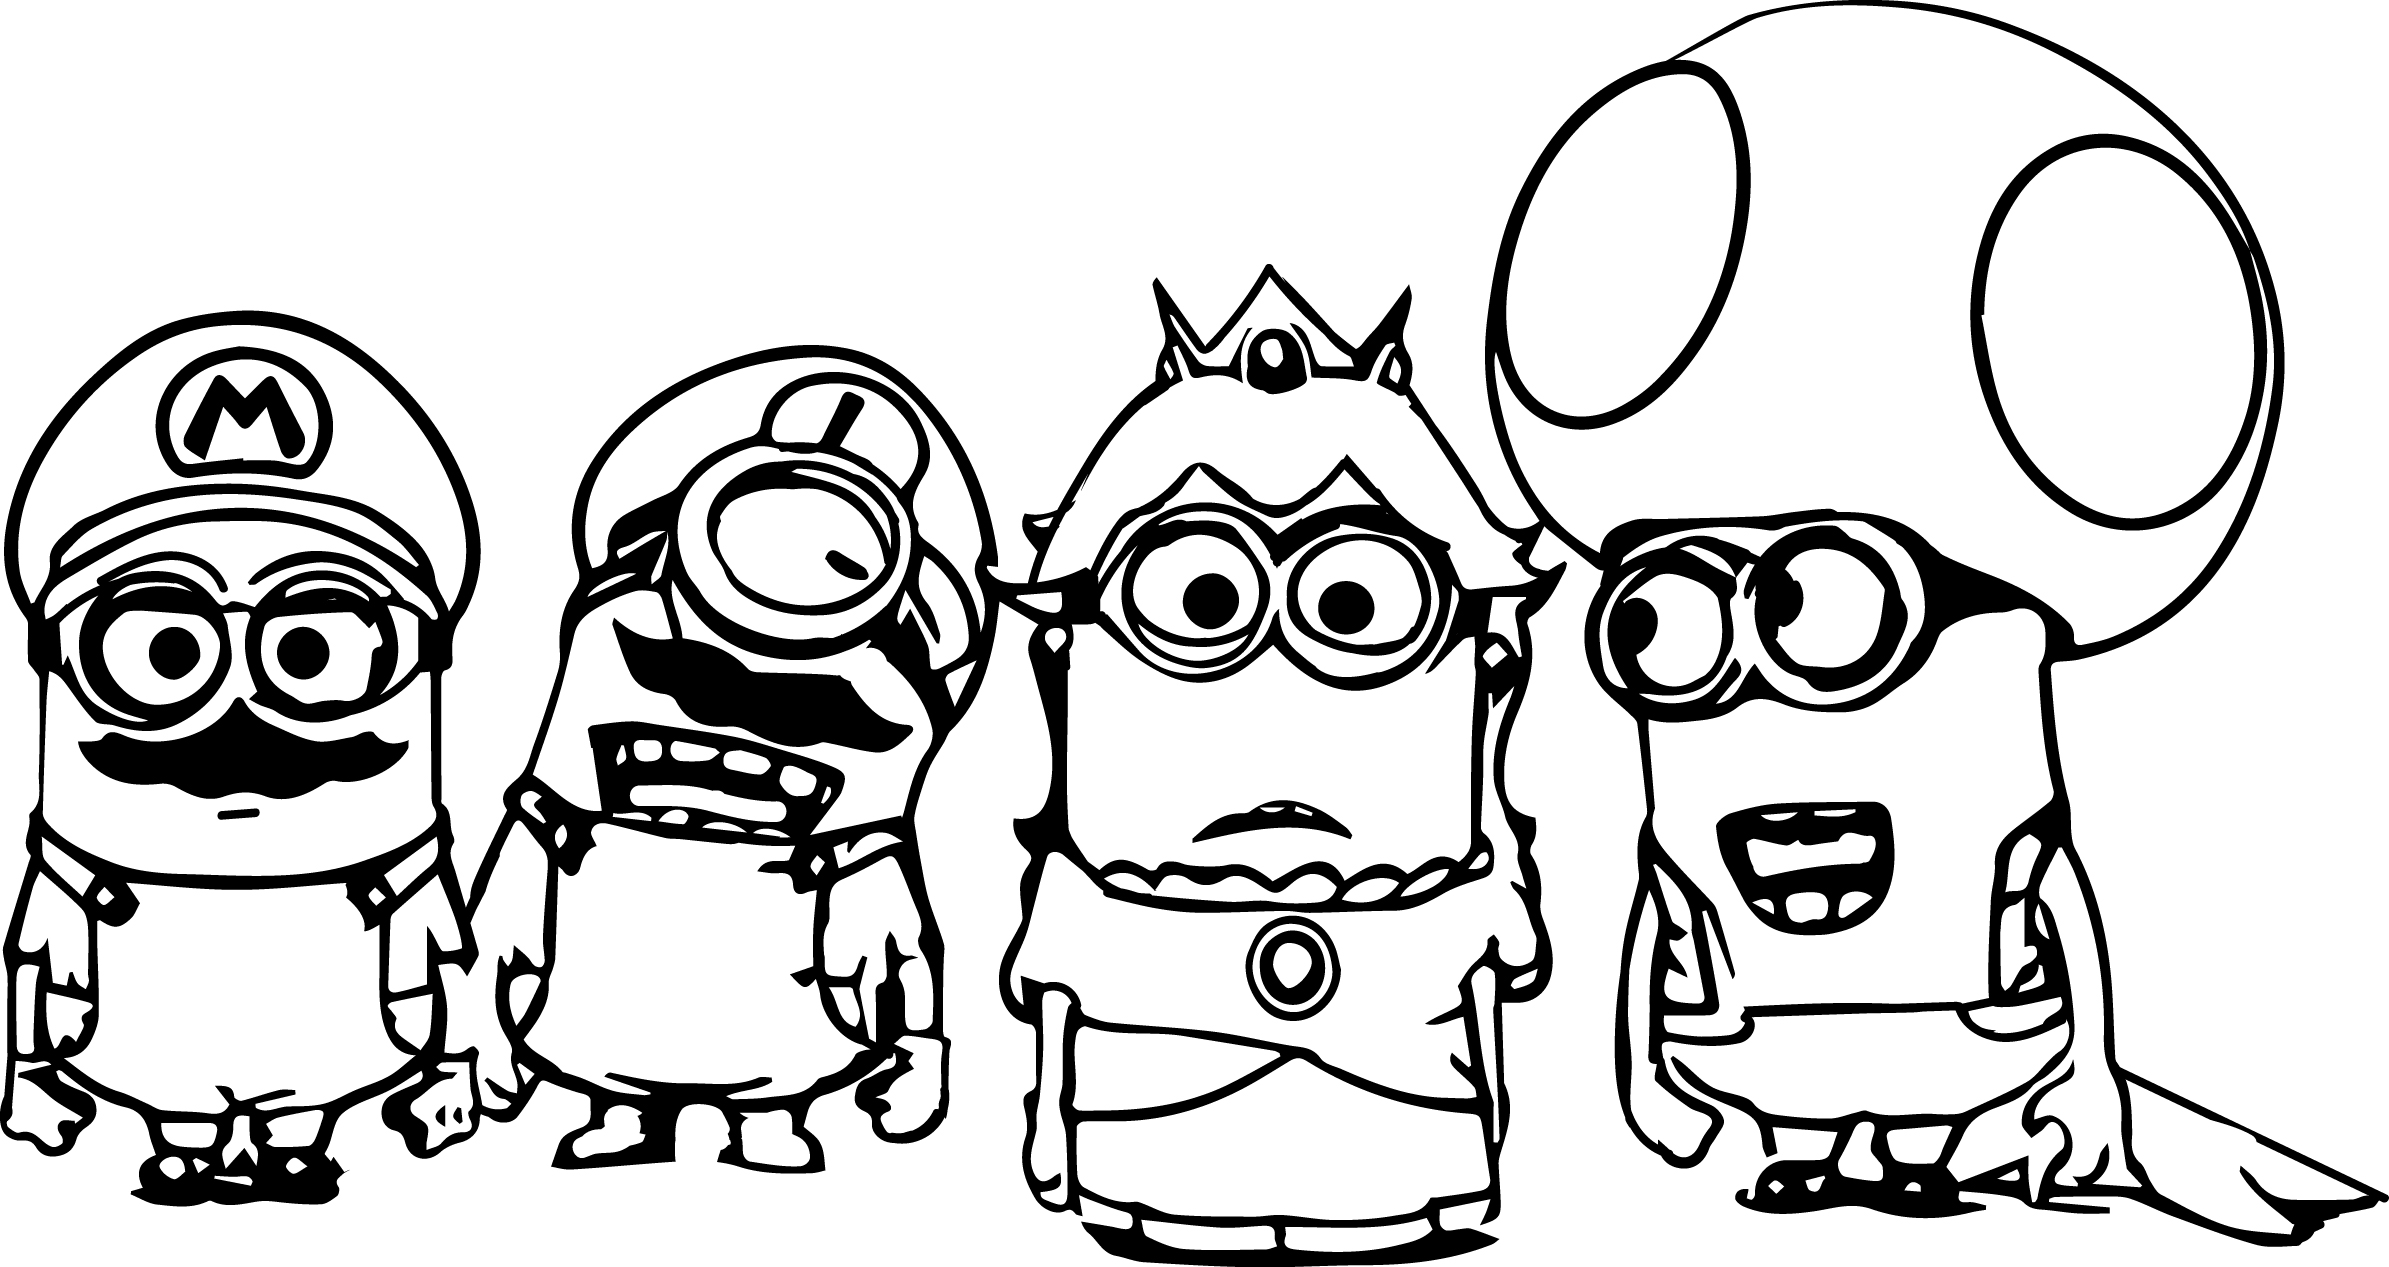 Minion Coloring Pages Minion Coloring Pages  Best Coloring Pages For Kids